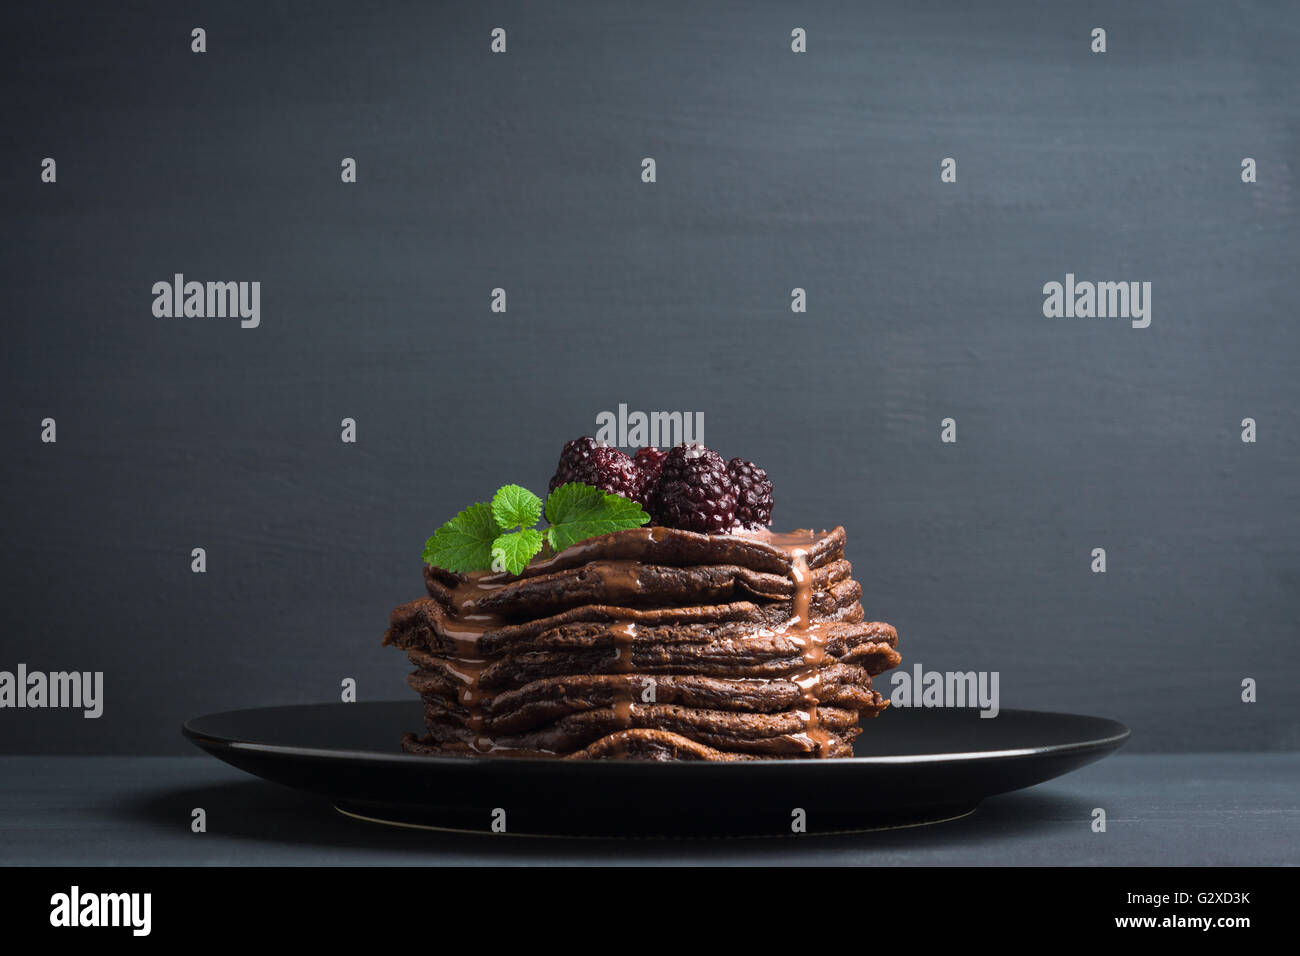 Stack of pancakes with fresh blackberries. Shallow depth of field. - Stock Image